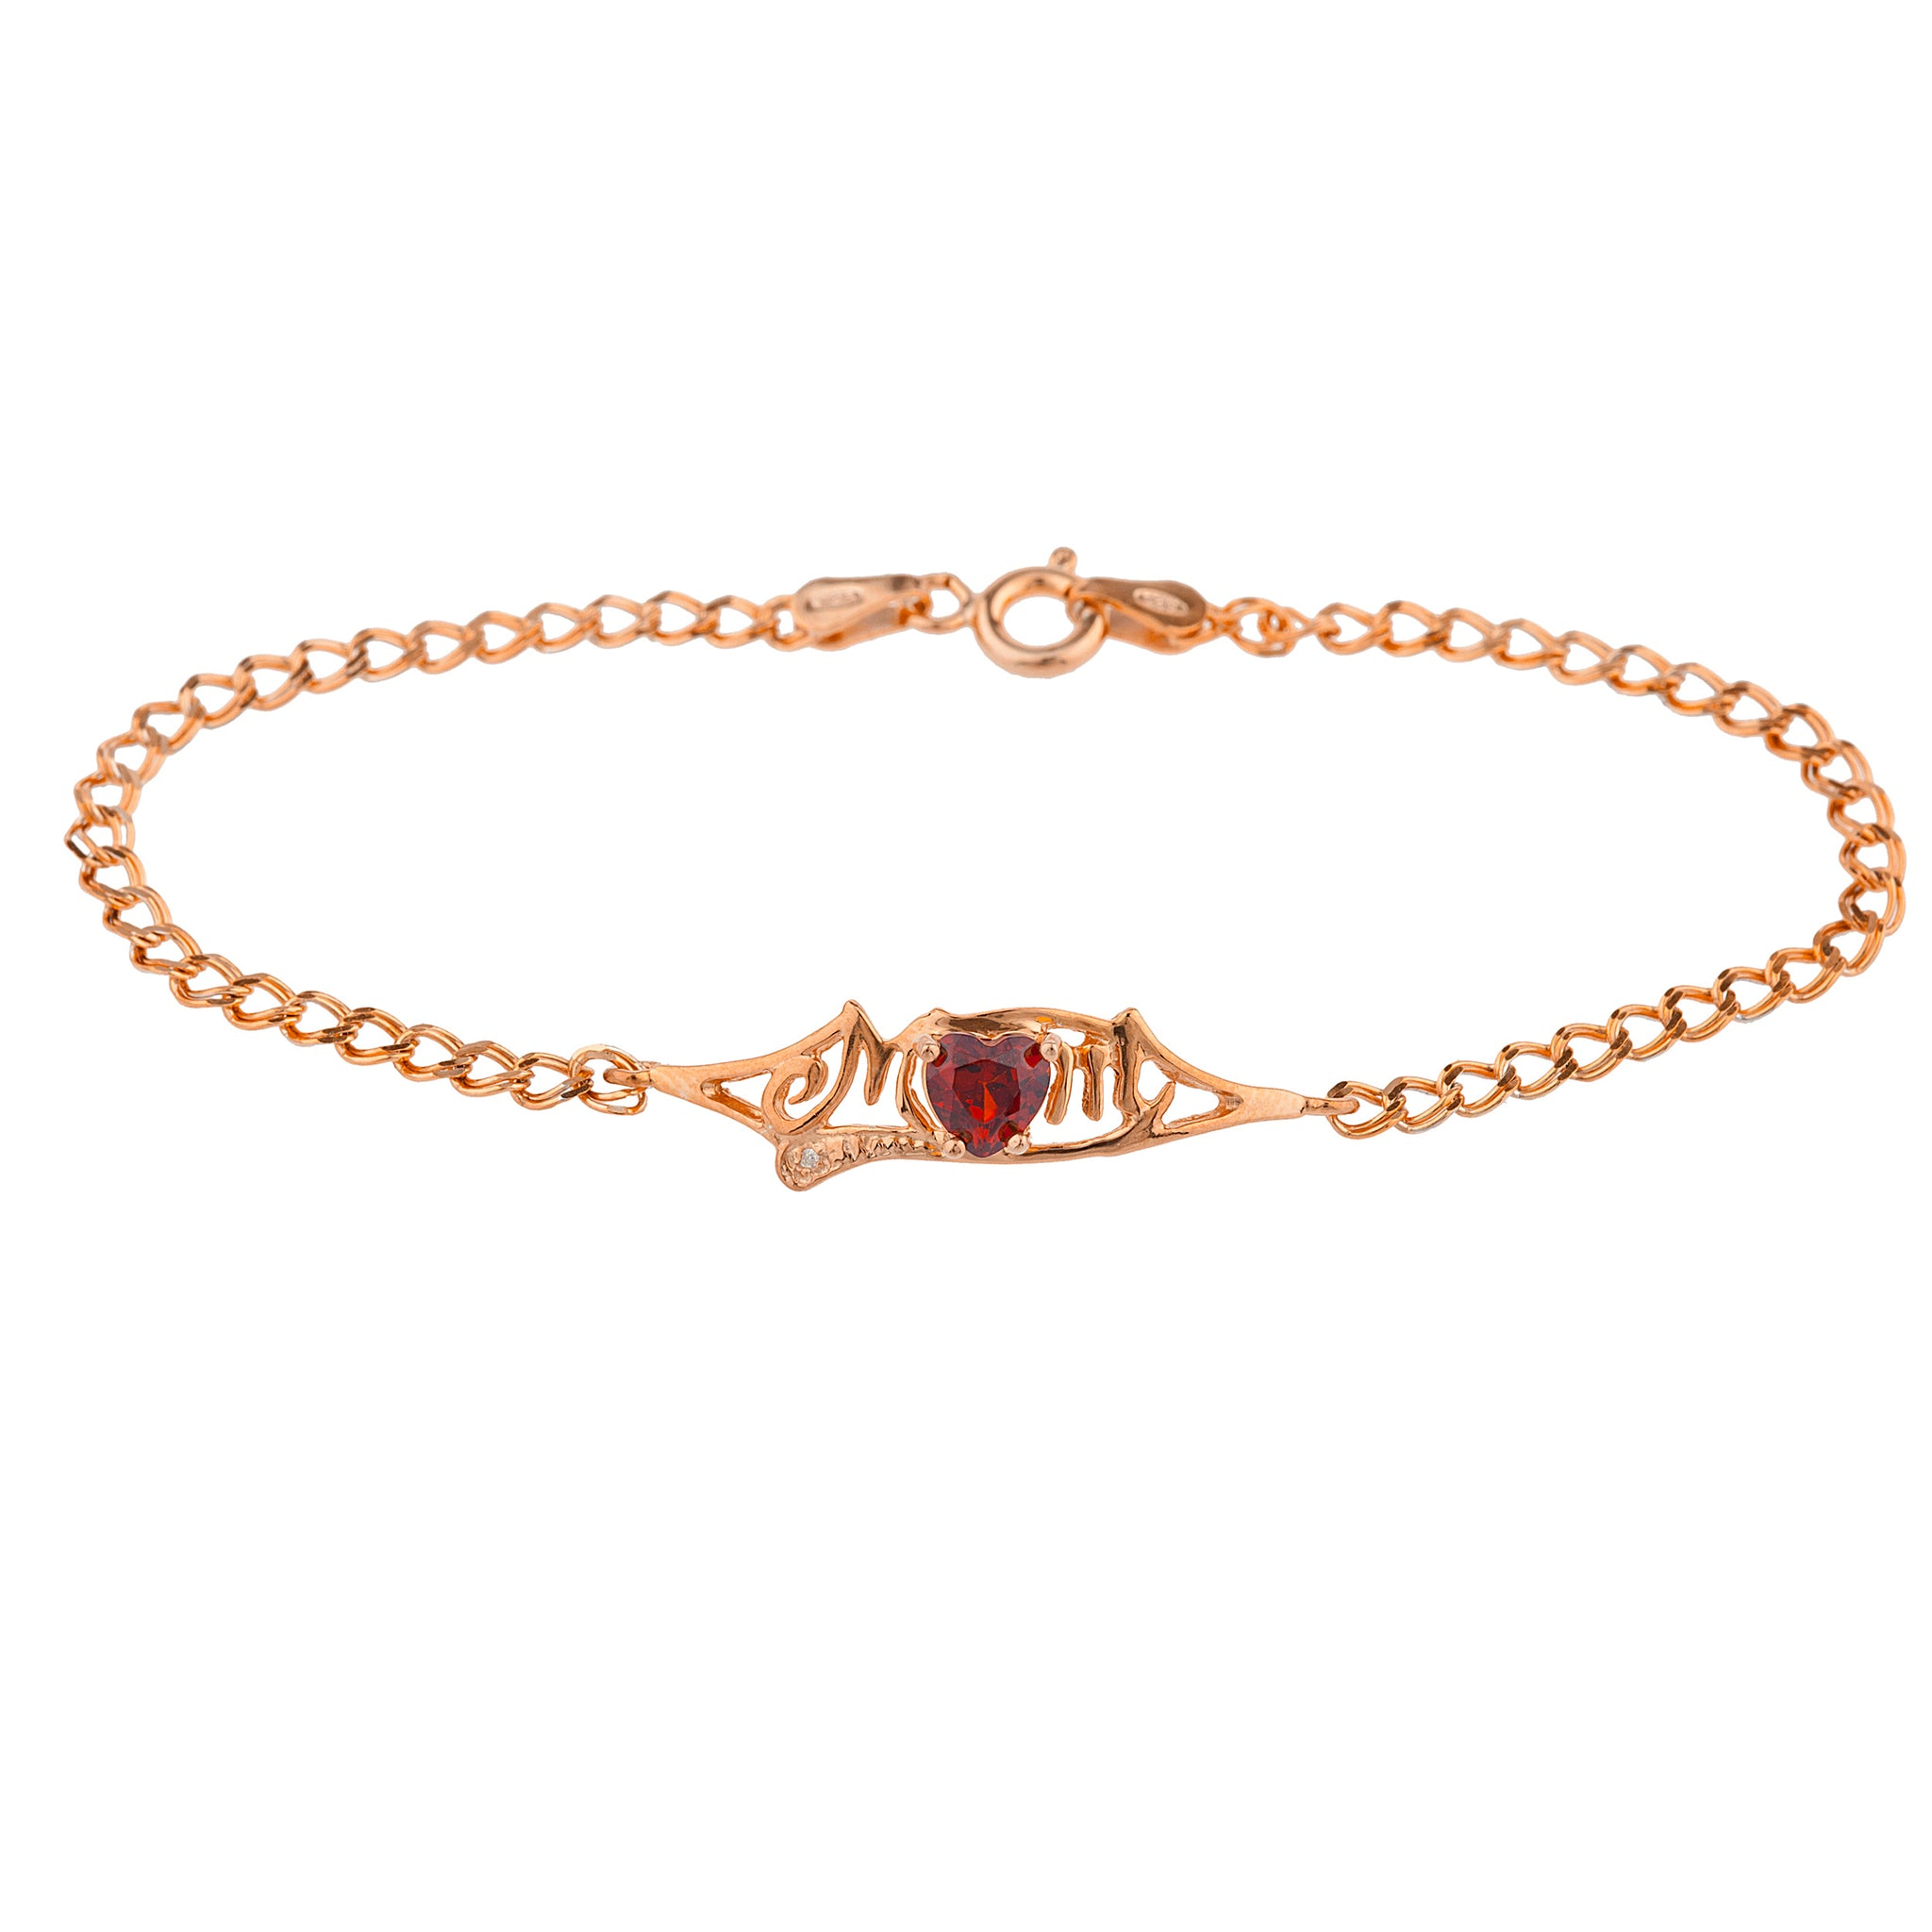 Garnet & Diamond Heart Mom Bracelet 14Kt Rose Gold Plated Over .925 Sterling Silver